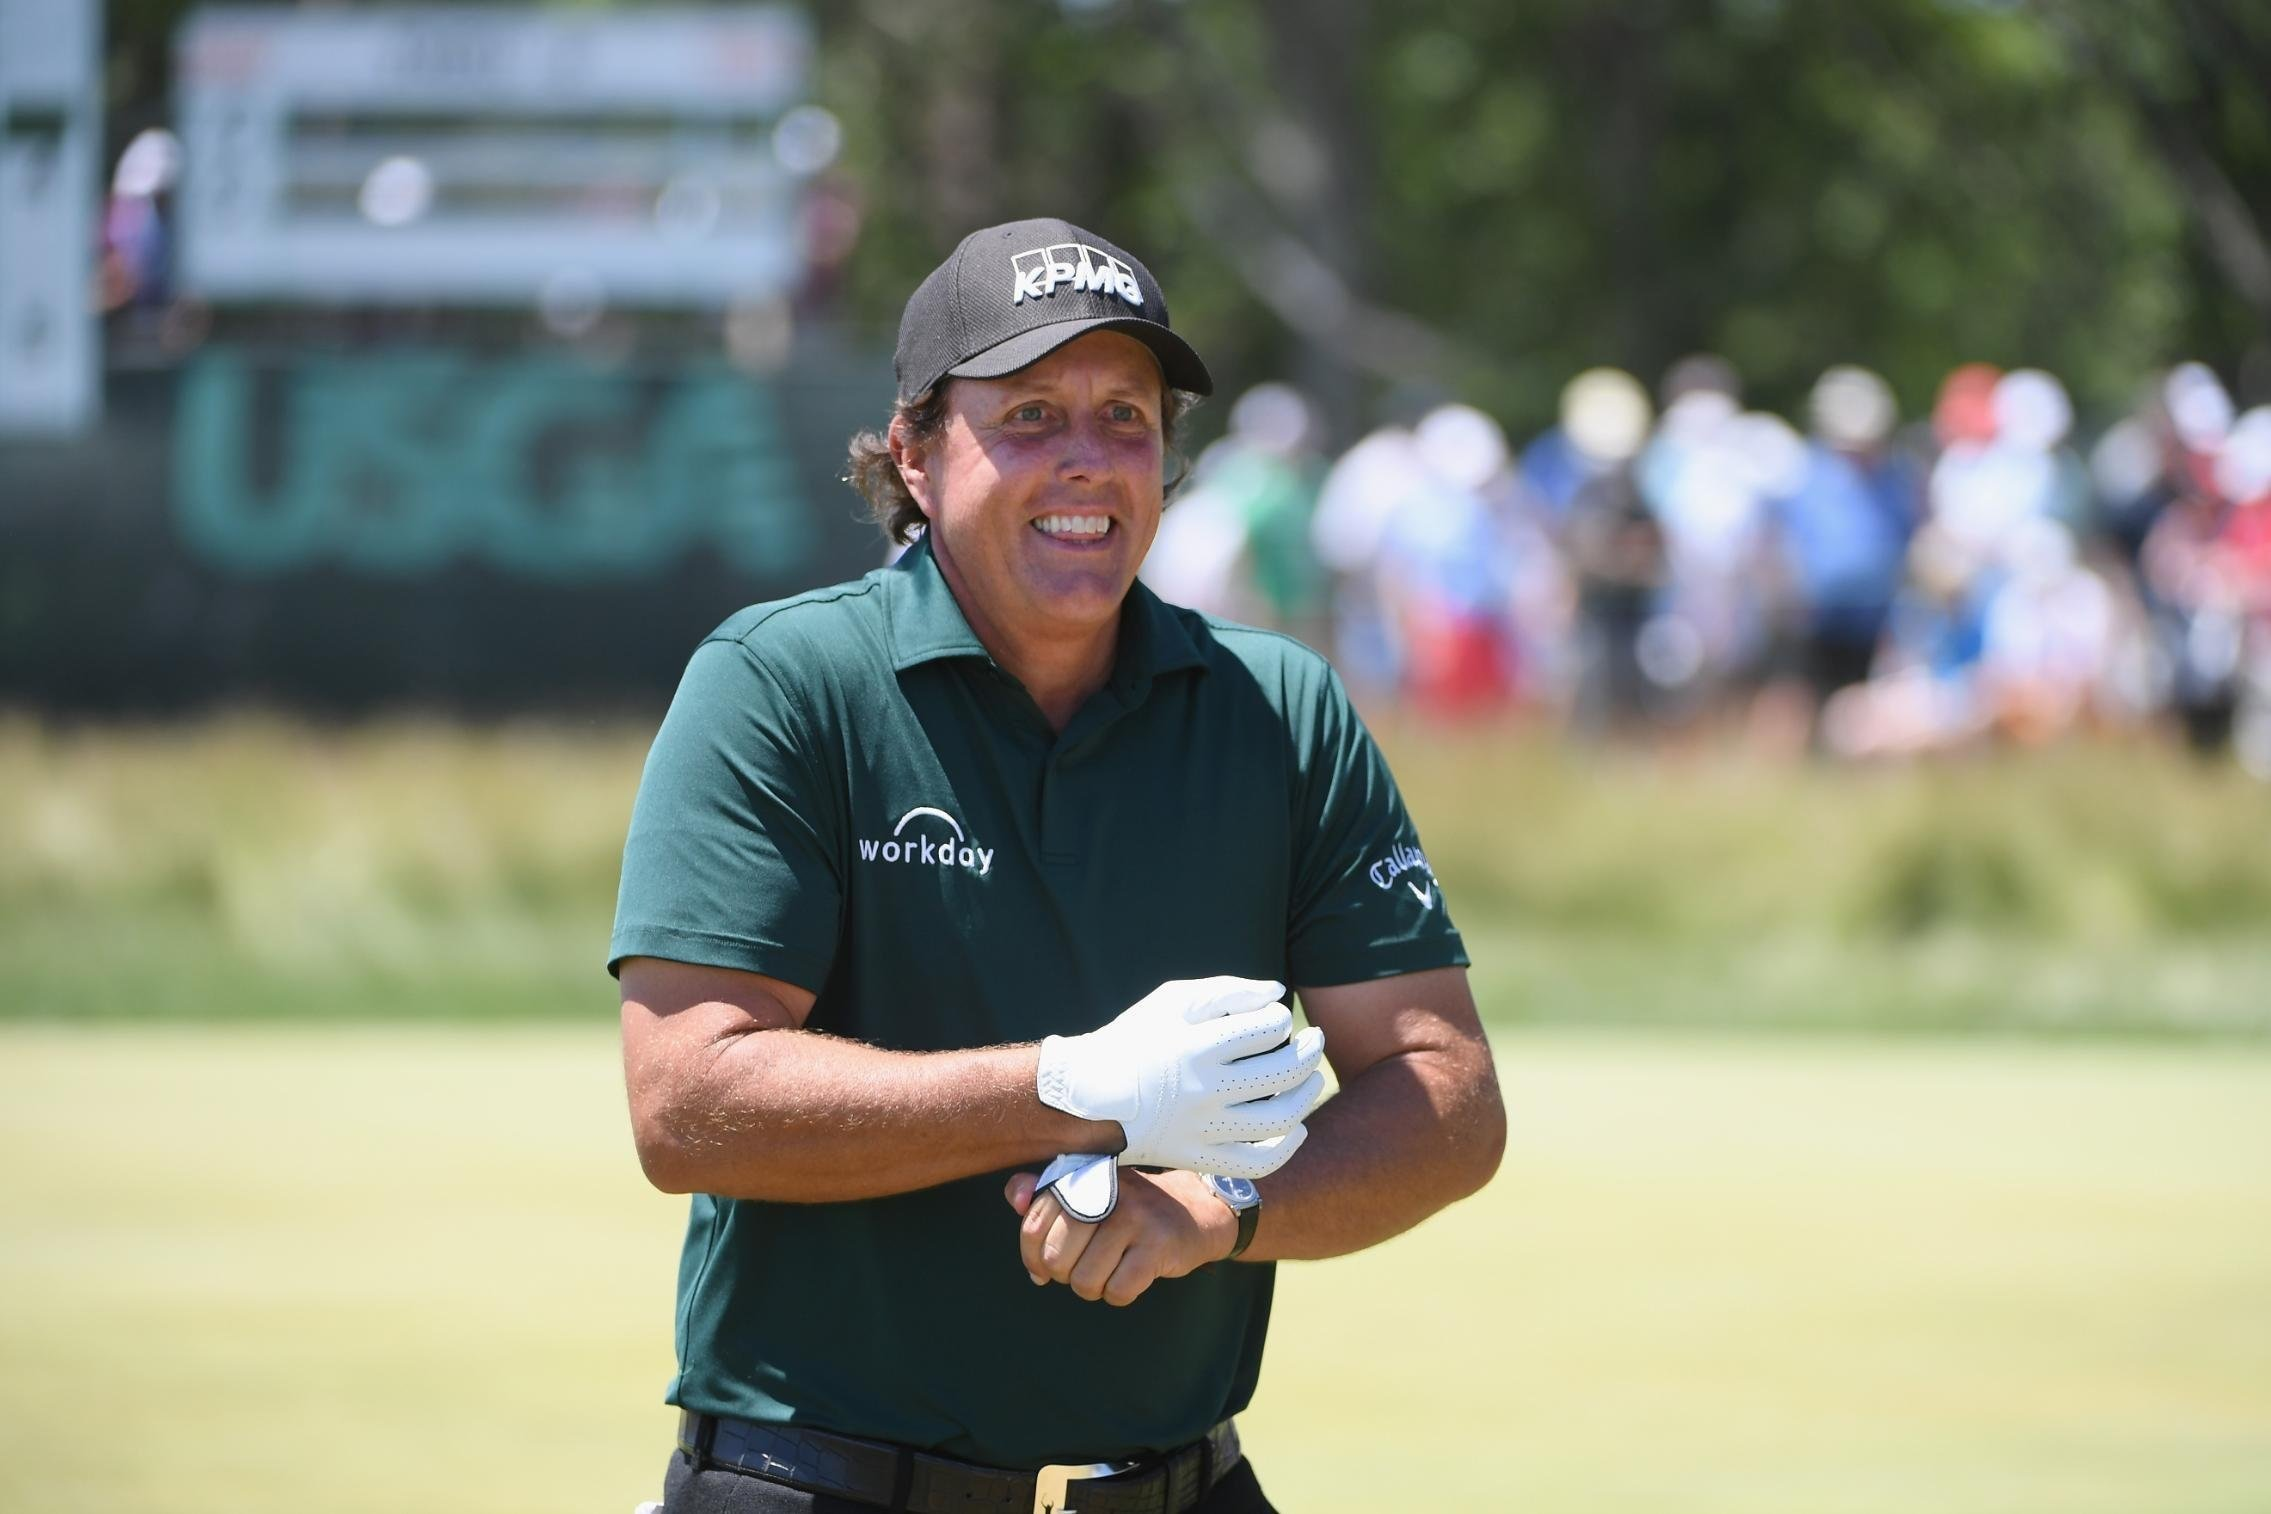 Phil Mickelson goes bonkers with his putter at the US Open